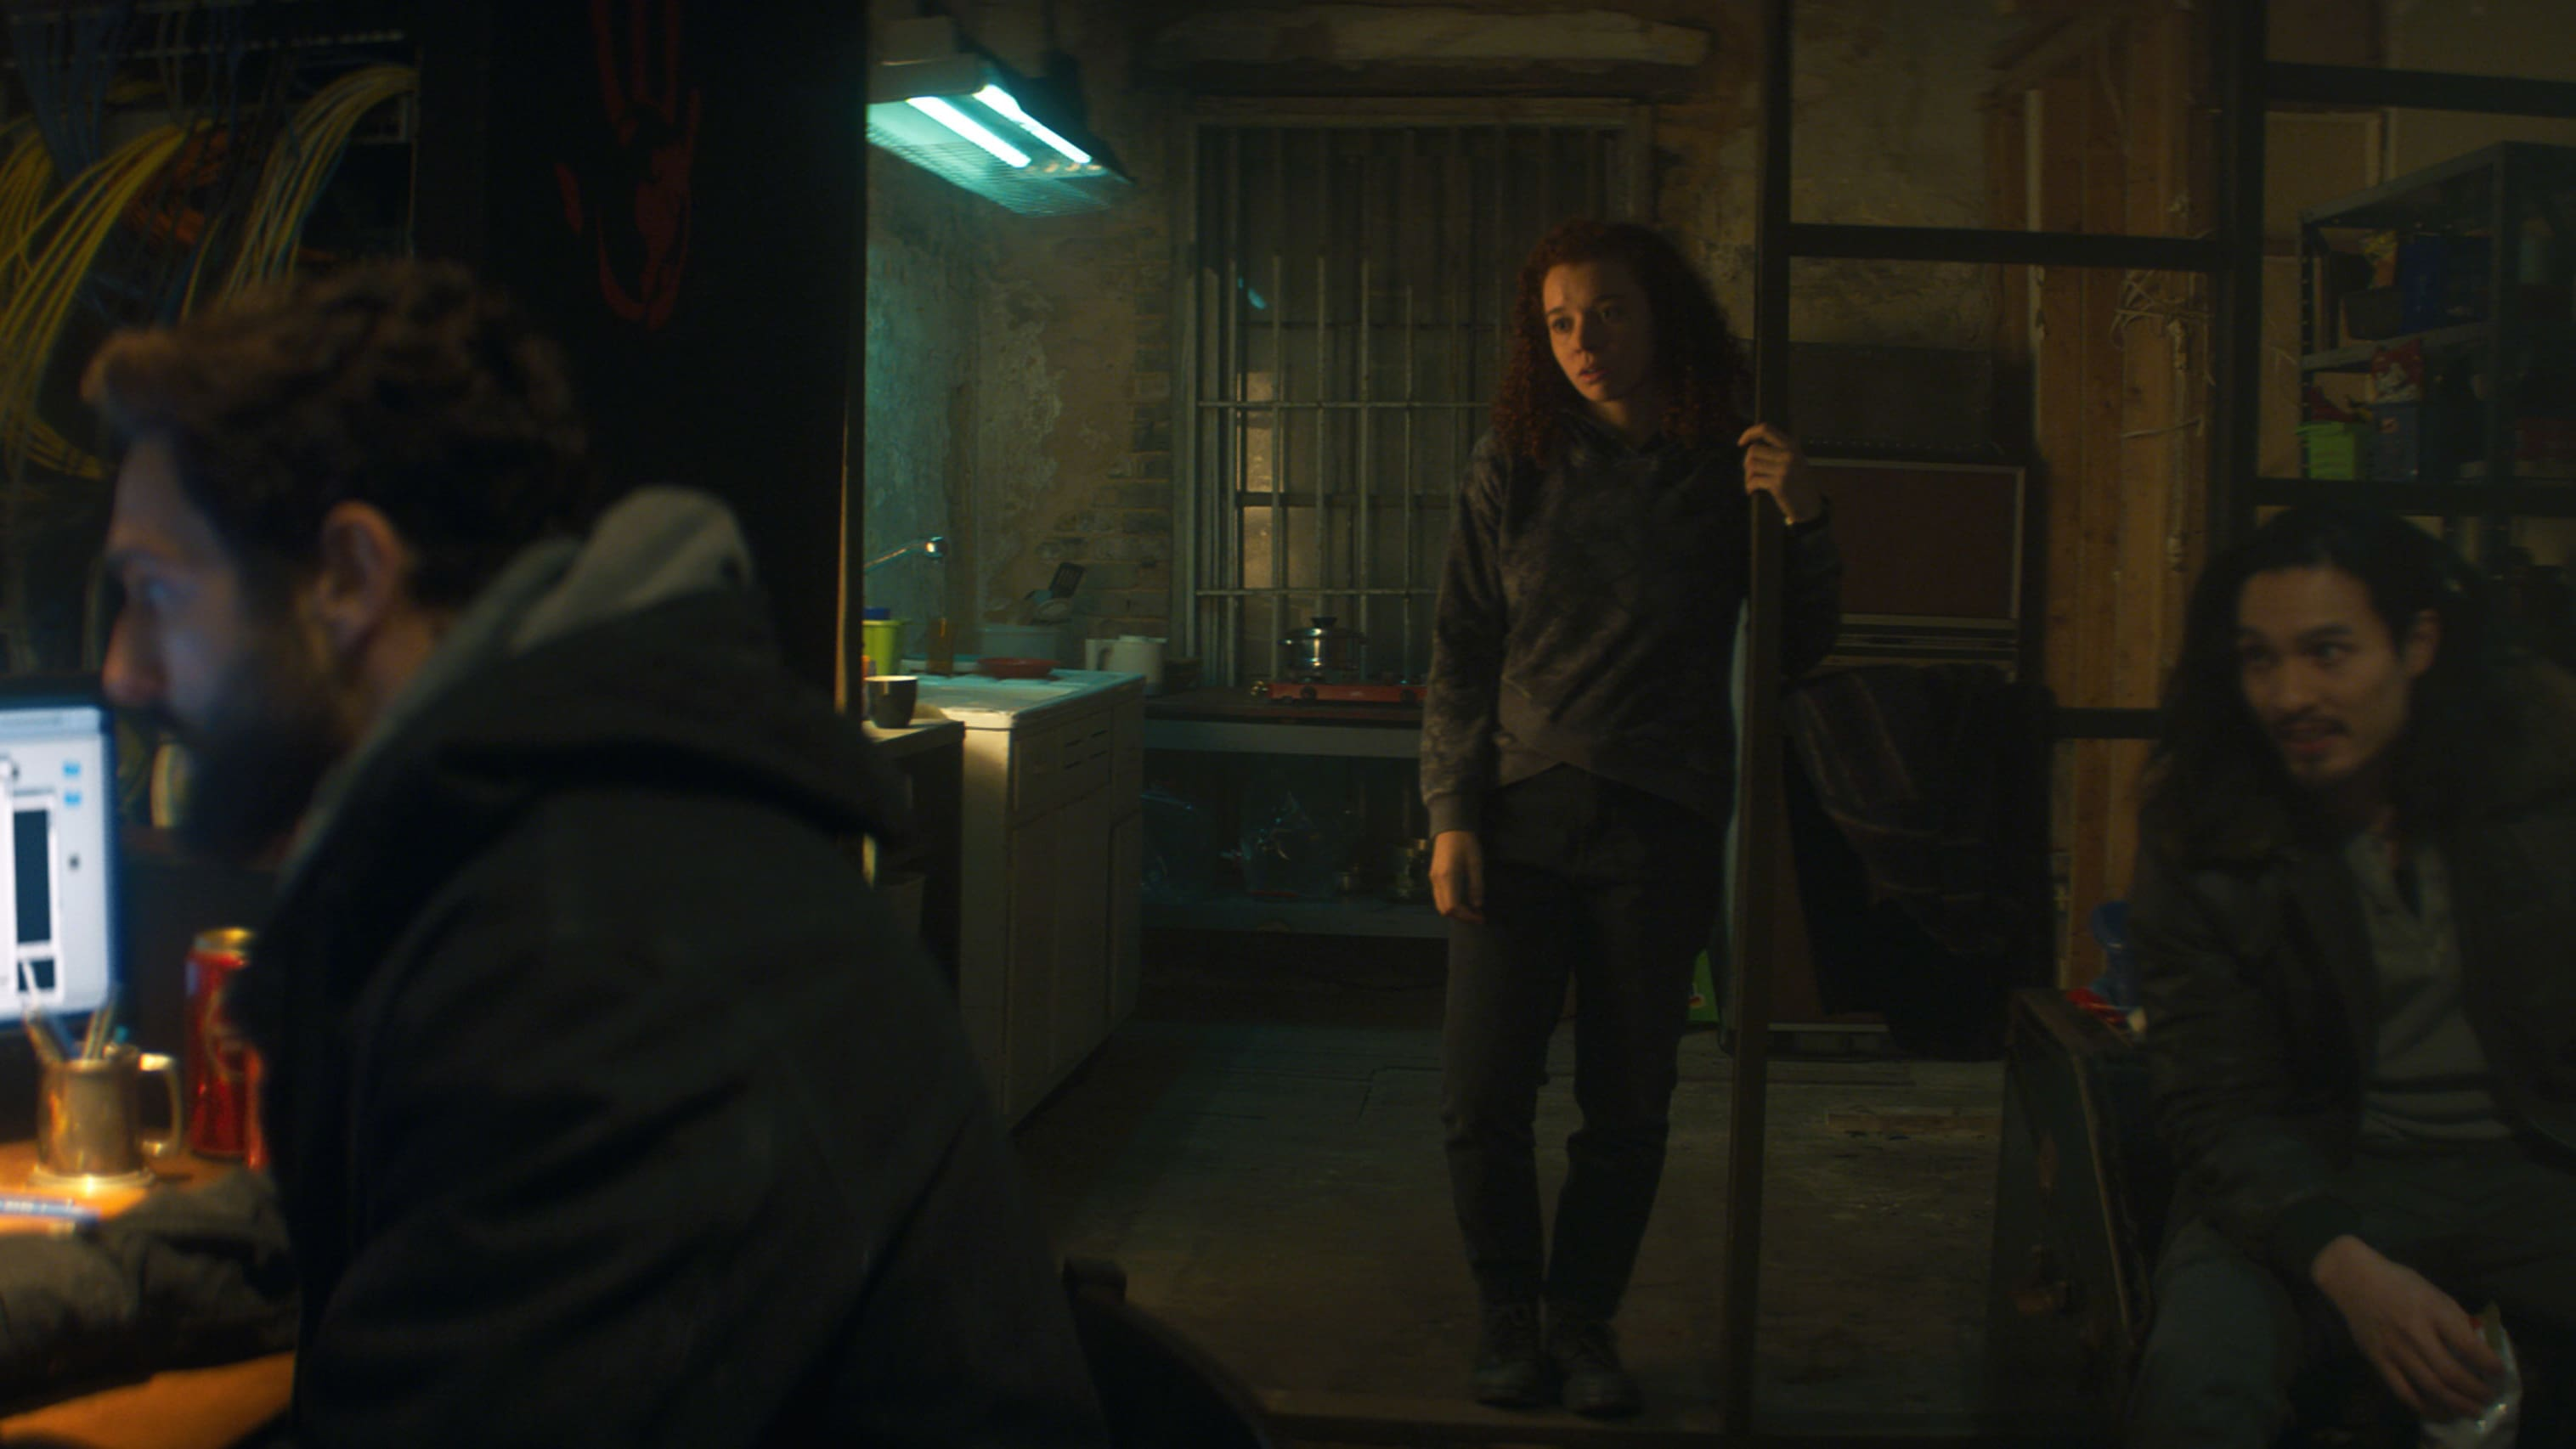 (L-R): Nico (Noah Mills), Karli Morgenthau (Erin Kellyman) and Dovich (Desmond Chiam) in Marvel Studios' THE FALCON AND THE WINTER SOLDIER exclusively on Disney+. Photo courtesy of Marvel Studios. ©Marvel Studios 2021. All Rights Reserved.